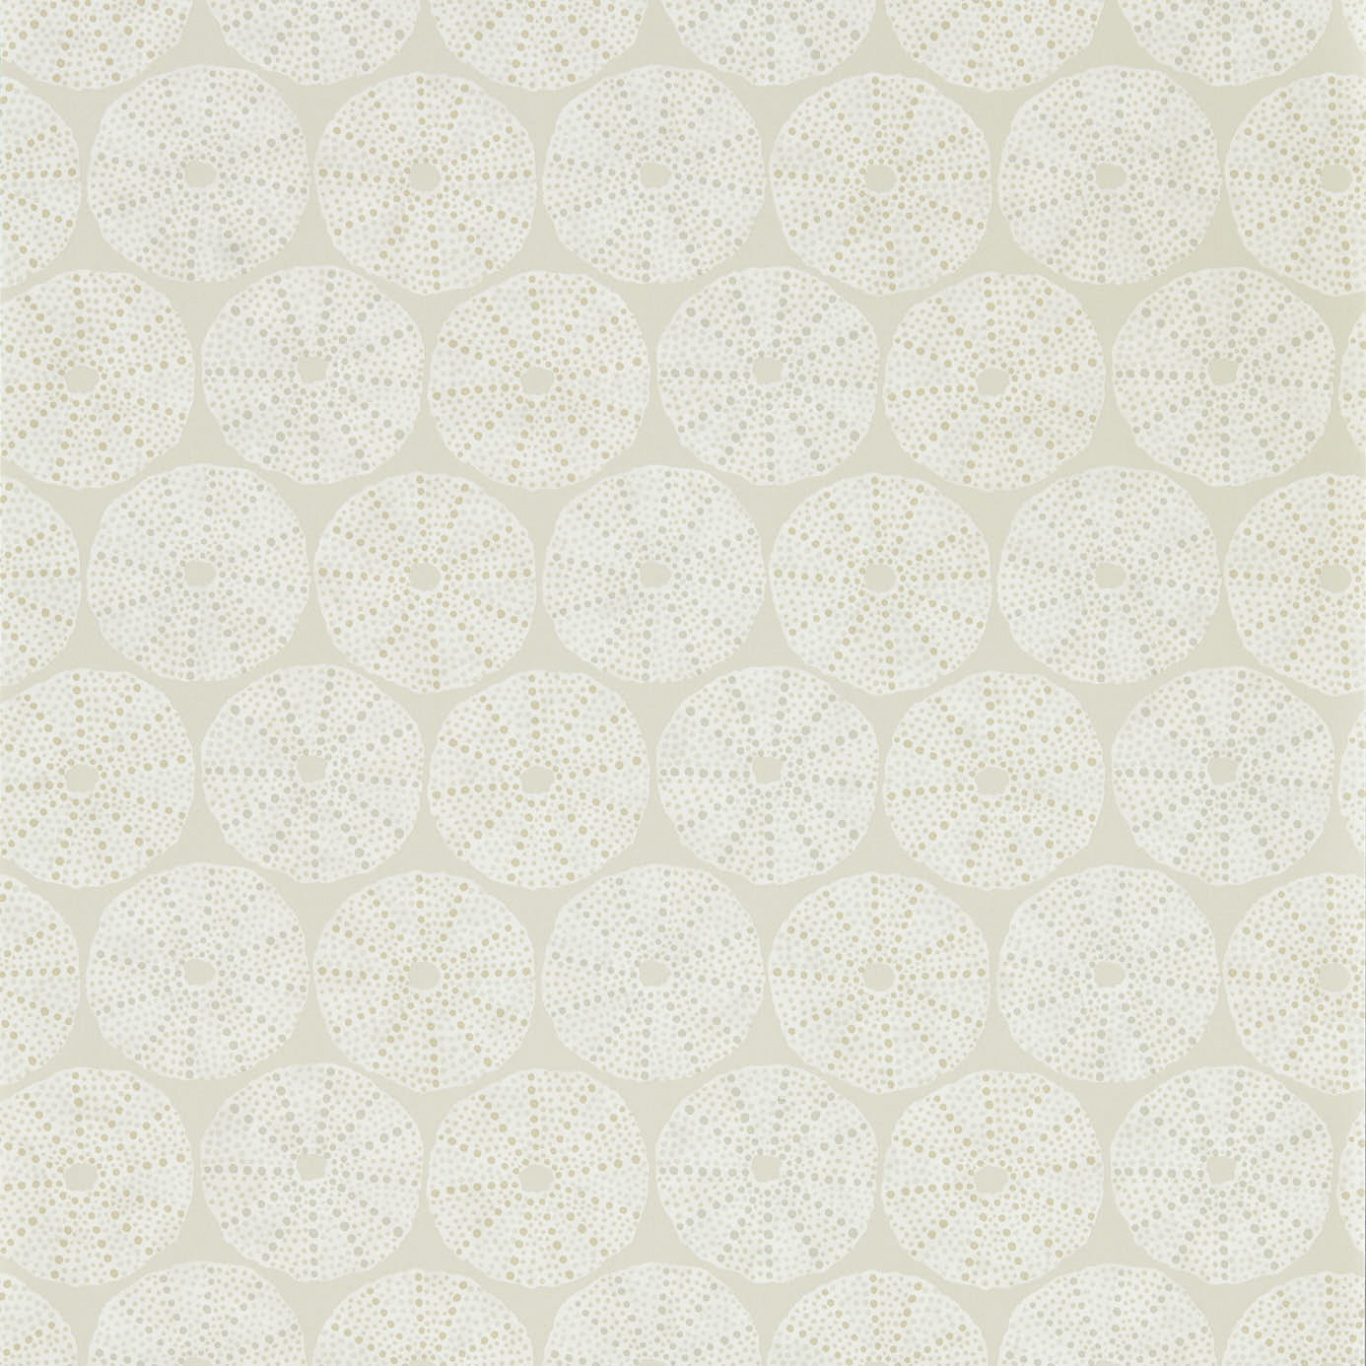 Image of Sanderson Home Maris Oyster Wallpaper 216590